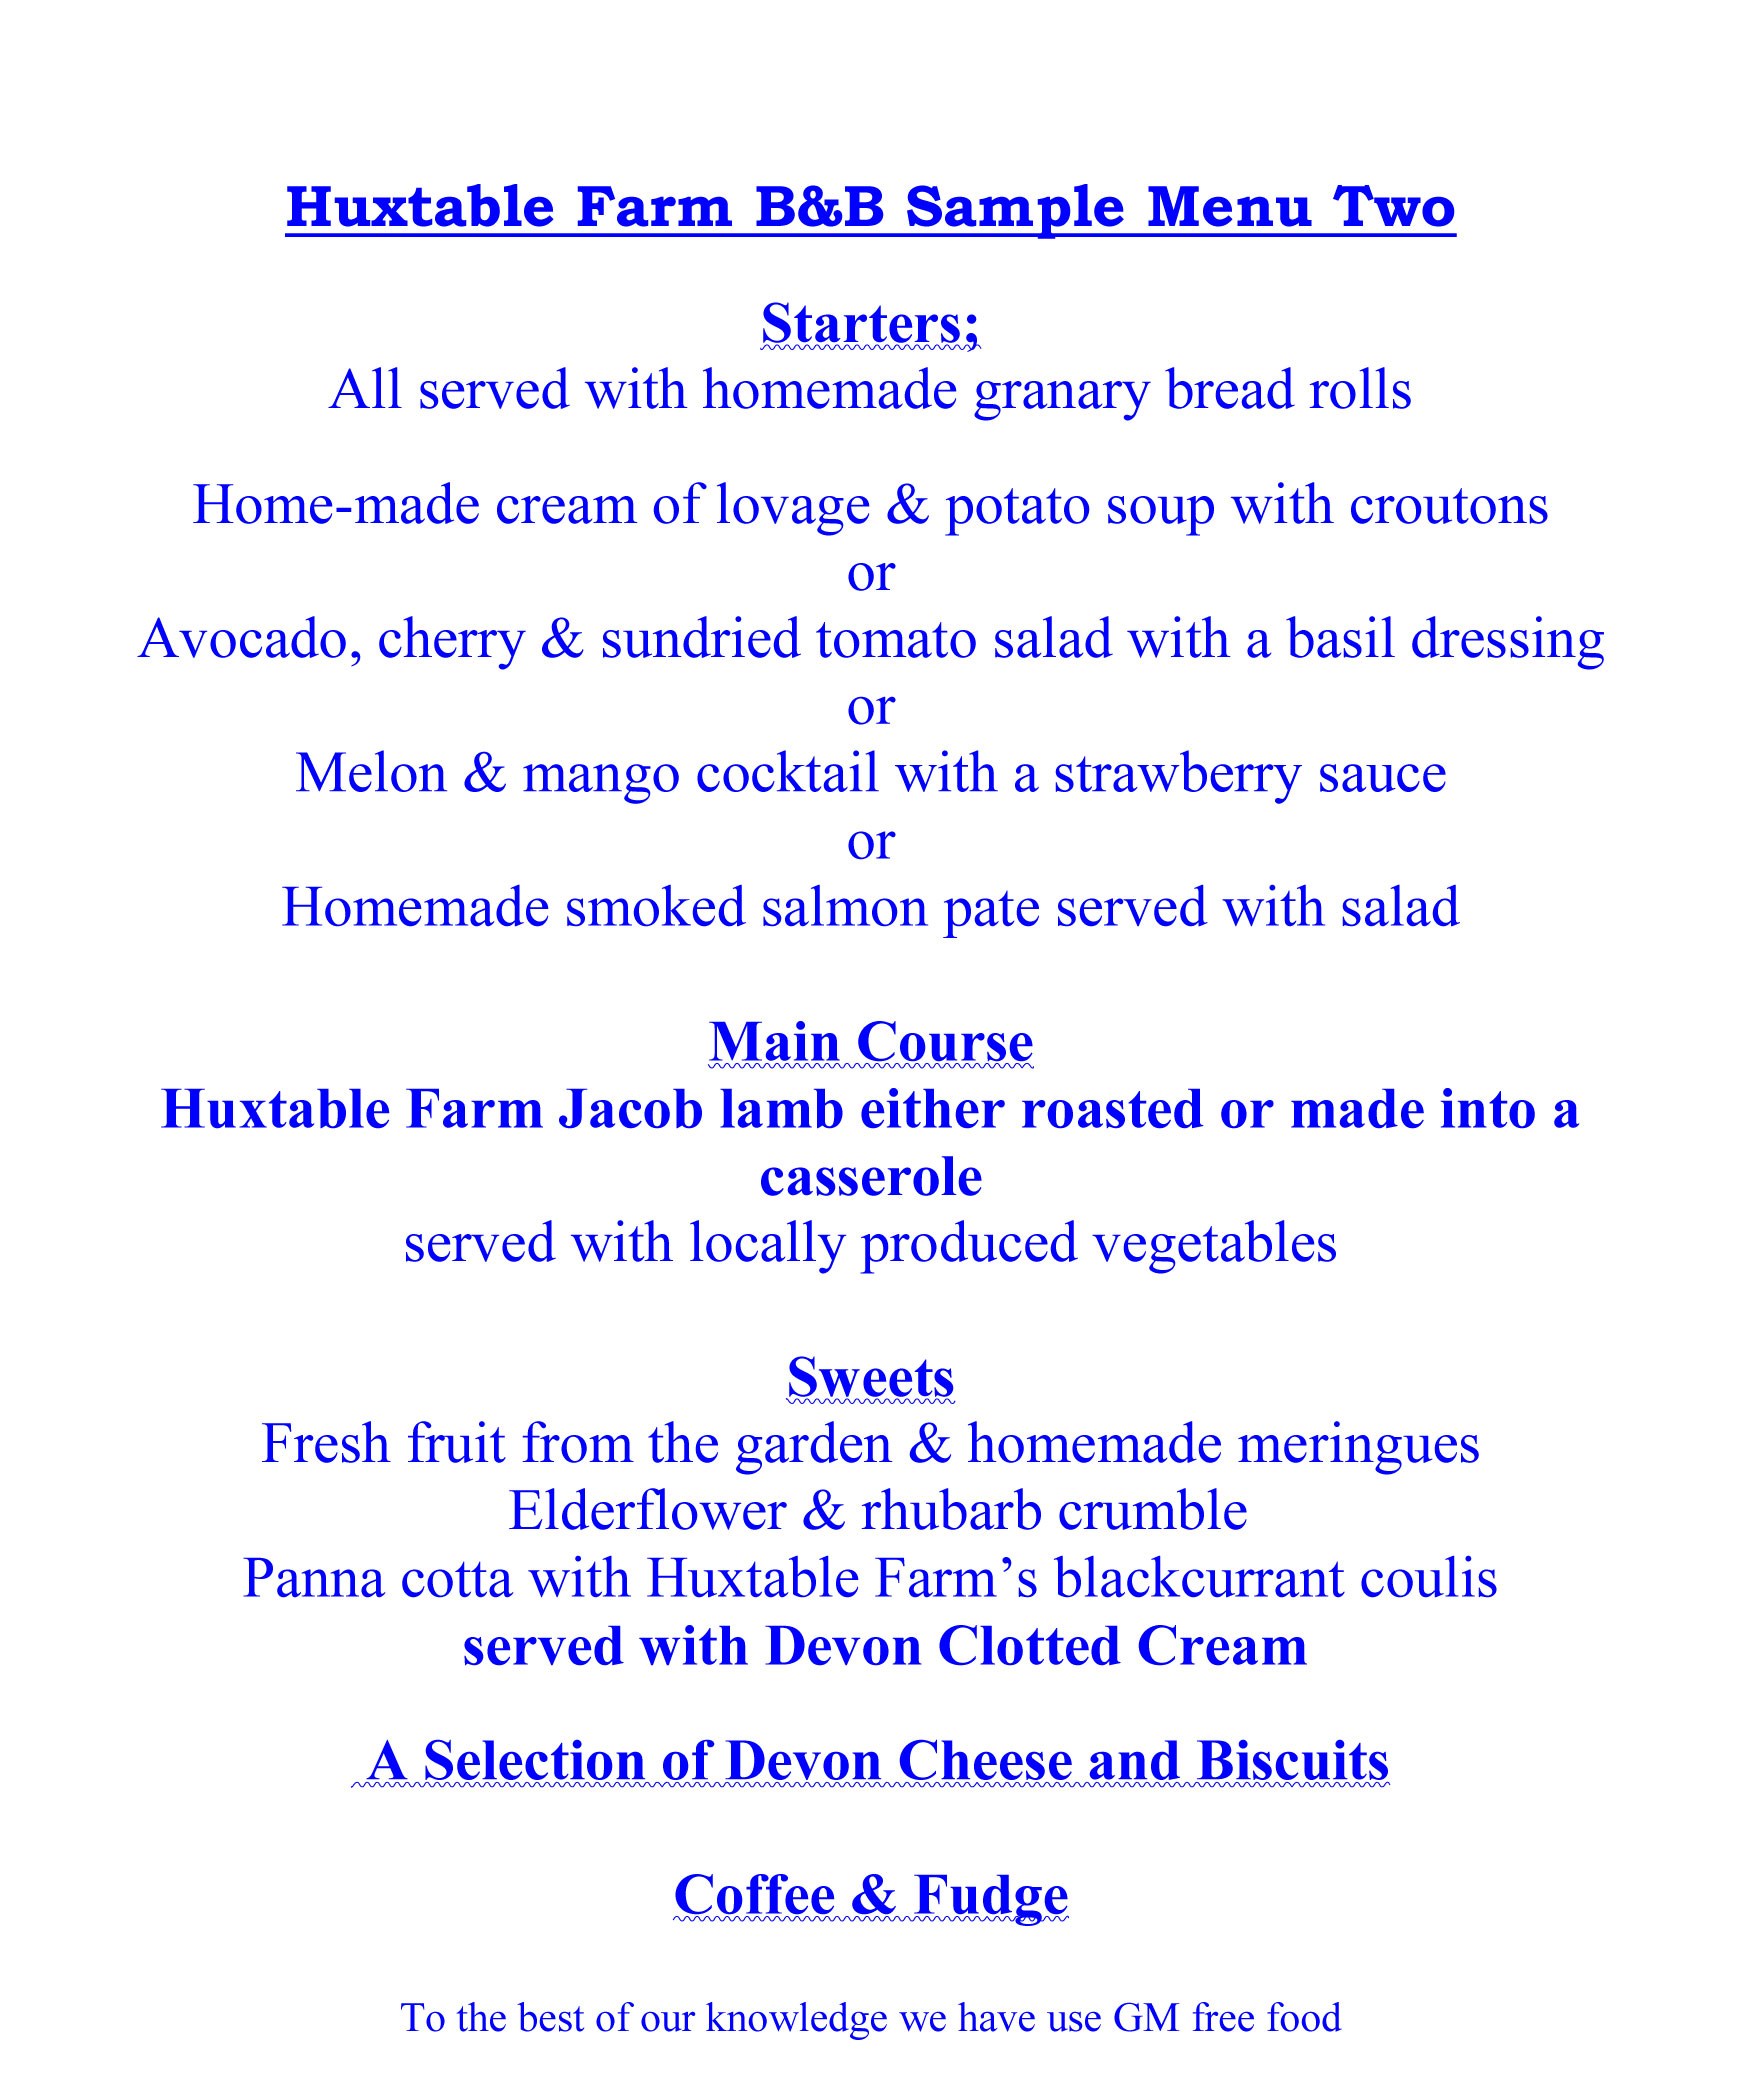 Sample Menu Two